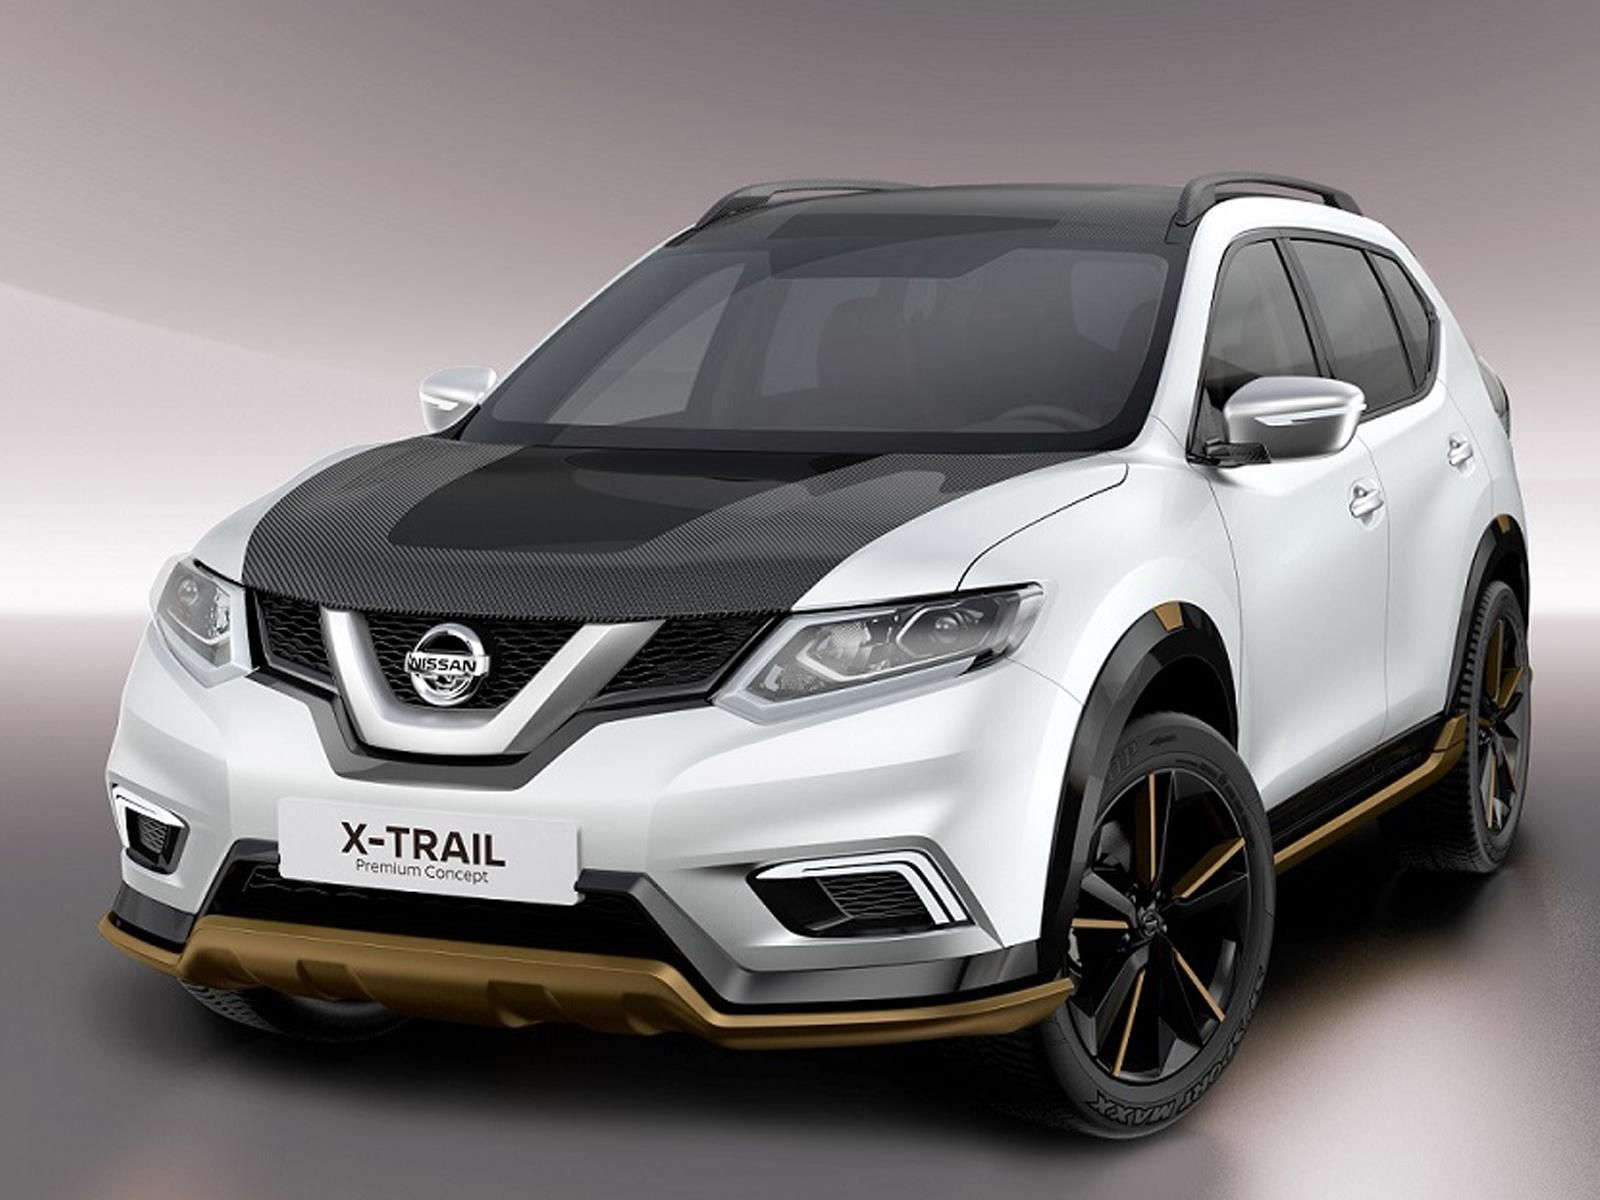 Image Result For Custom Nissan Rogue Off Road Nissan Qashqai Nissan Xtrail Nissan